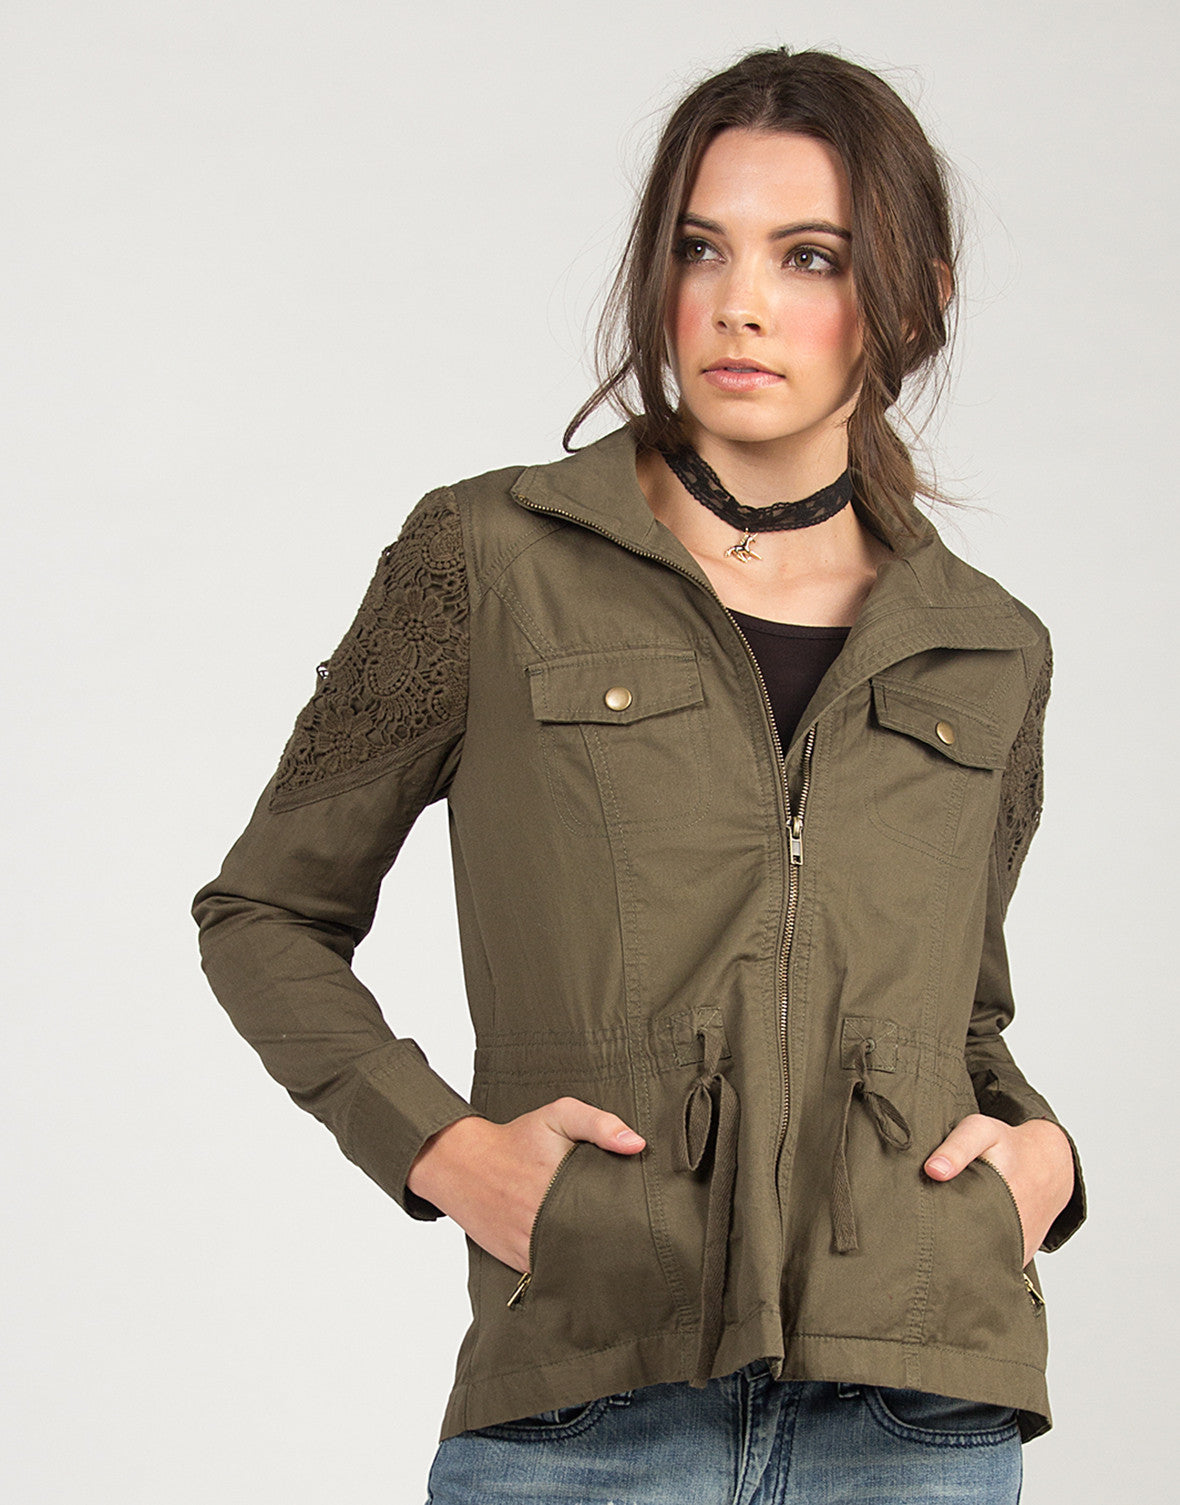 Crochet Detail Military Jacket - Olive - 2020AVE